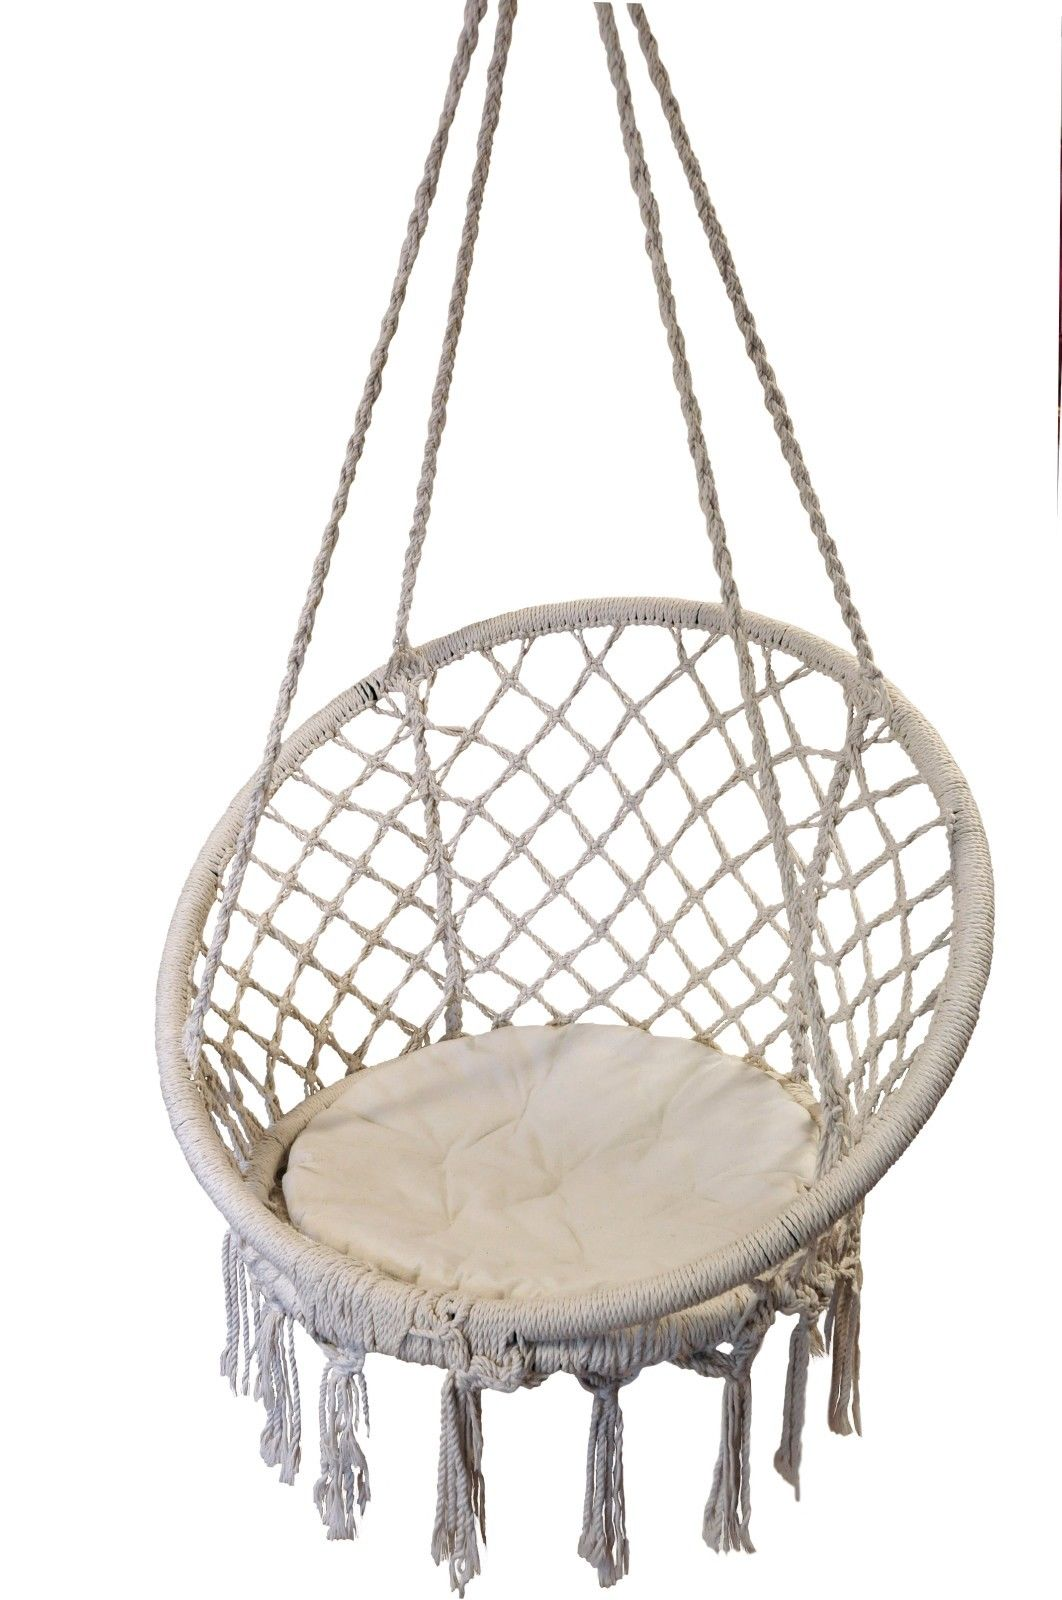 macrame hanging chair macrame hanging chair rope